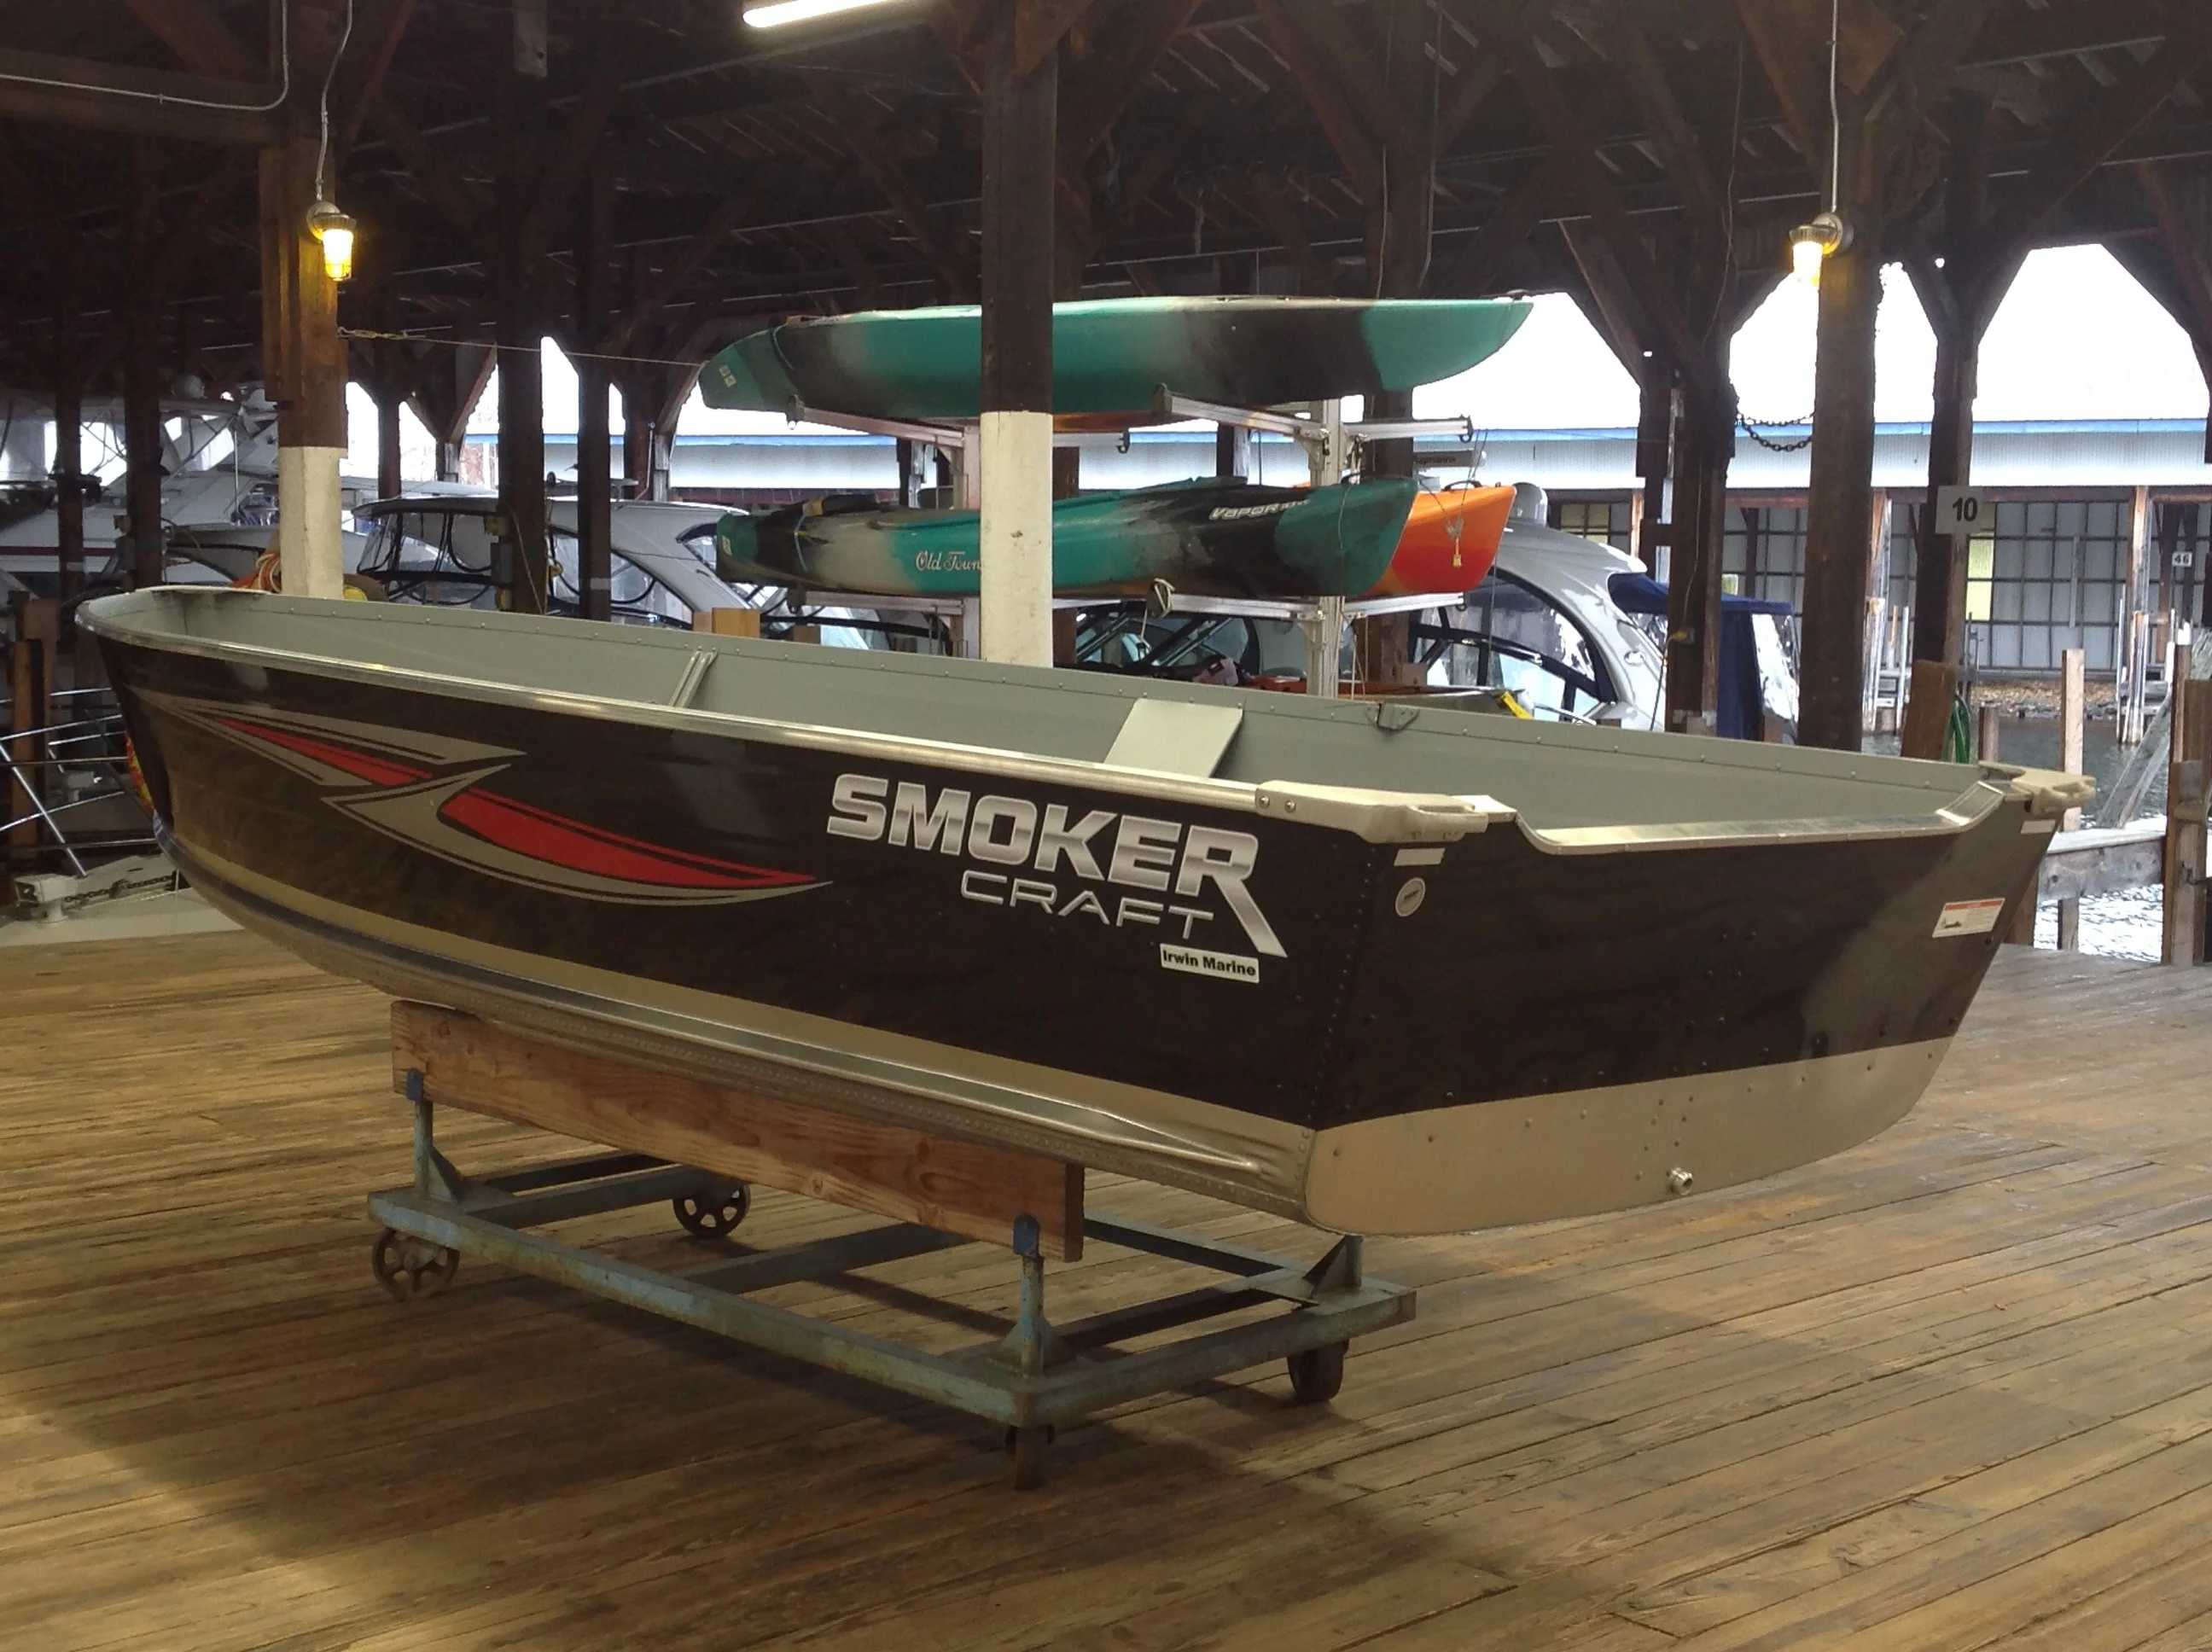 2021 Smoker Craft boat for sale, model of the boat is 14 Voyager Tl Ss & Image # 3 of 8